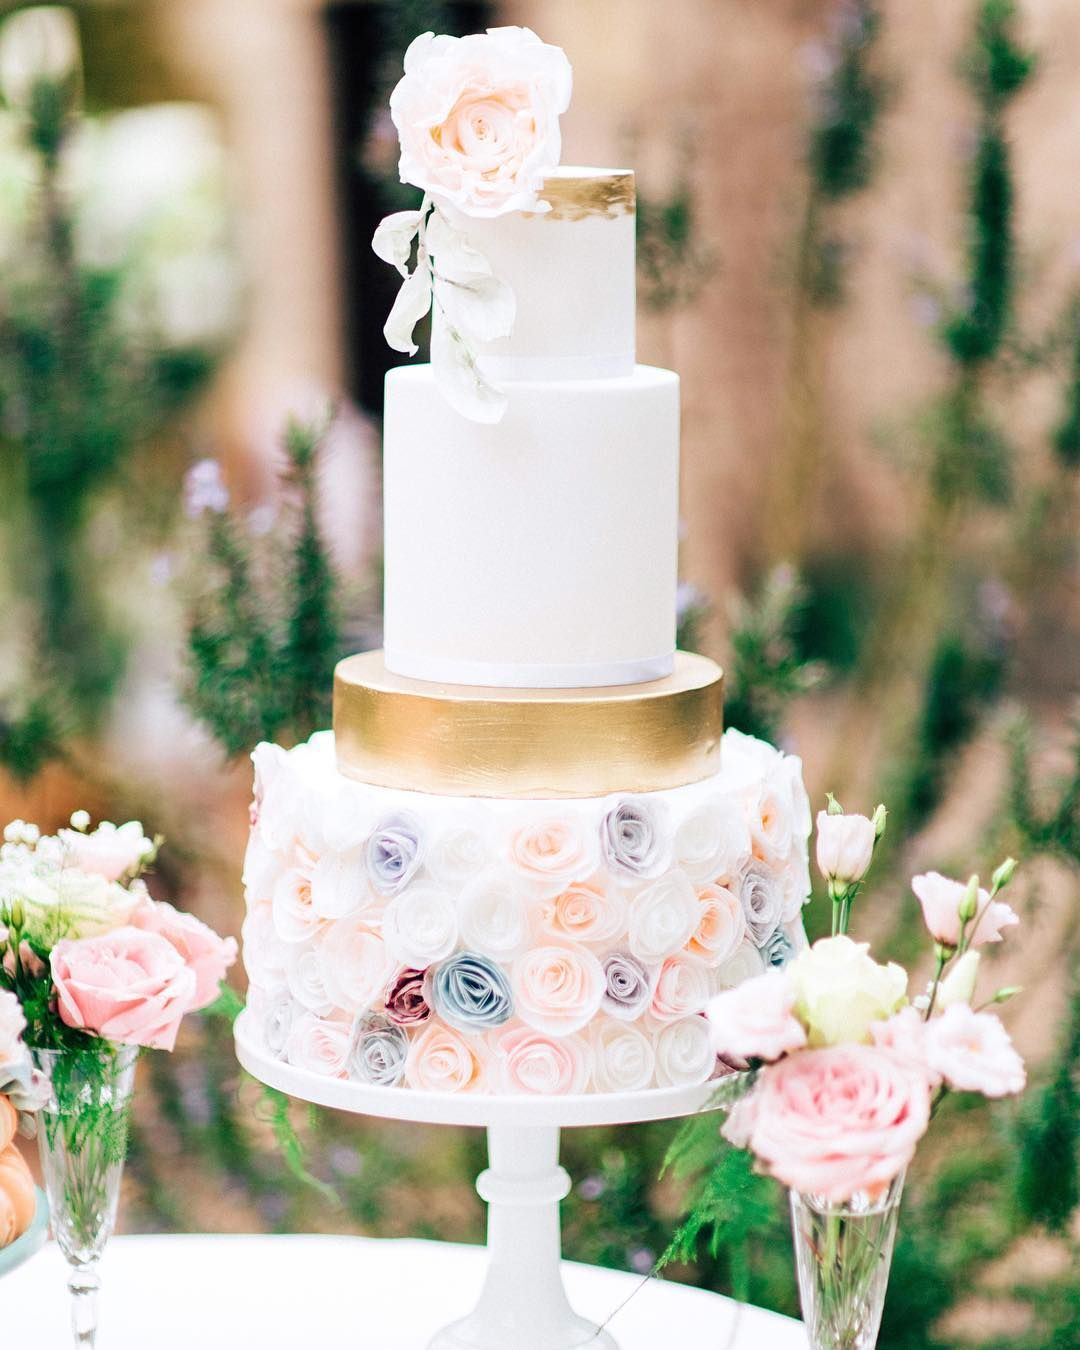 As featured in you u your wedding we love the intricate rose iced